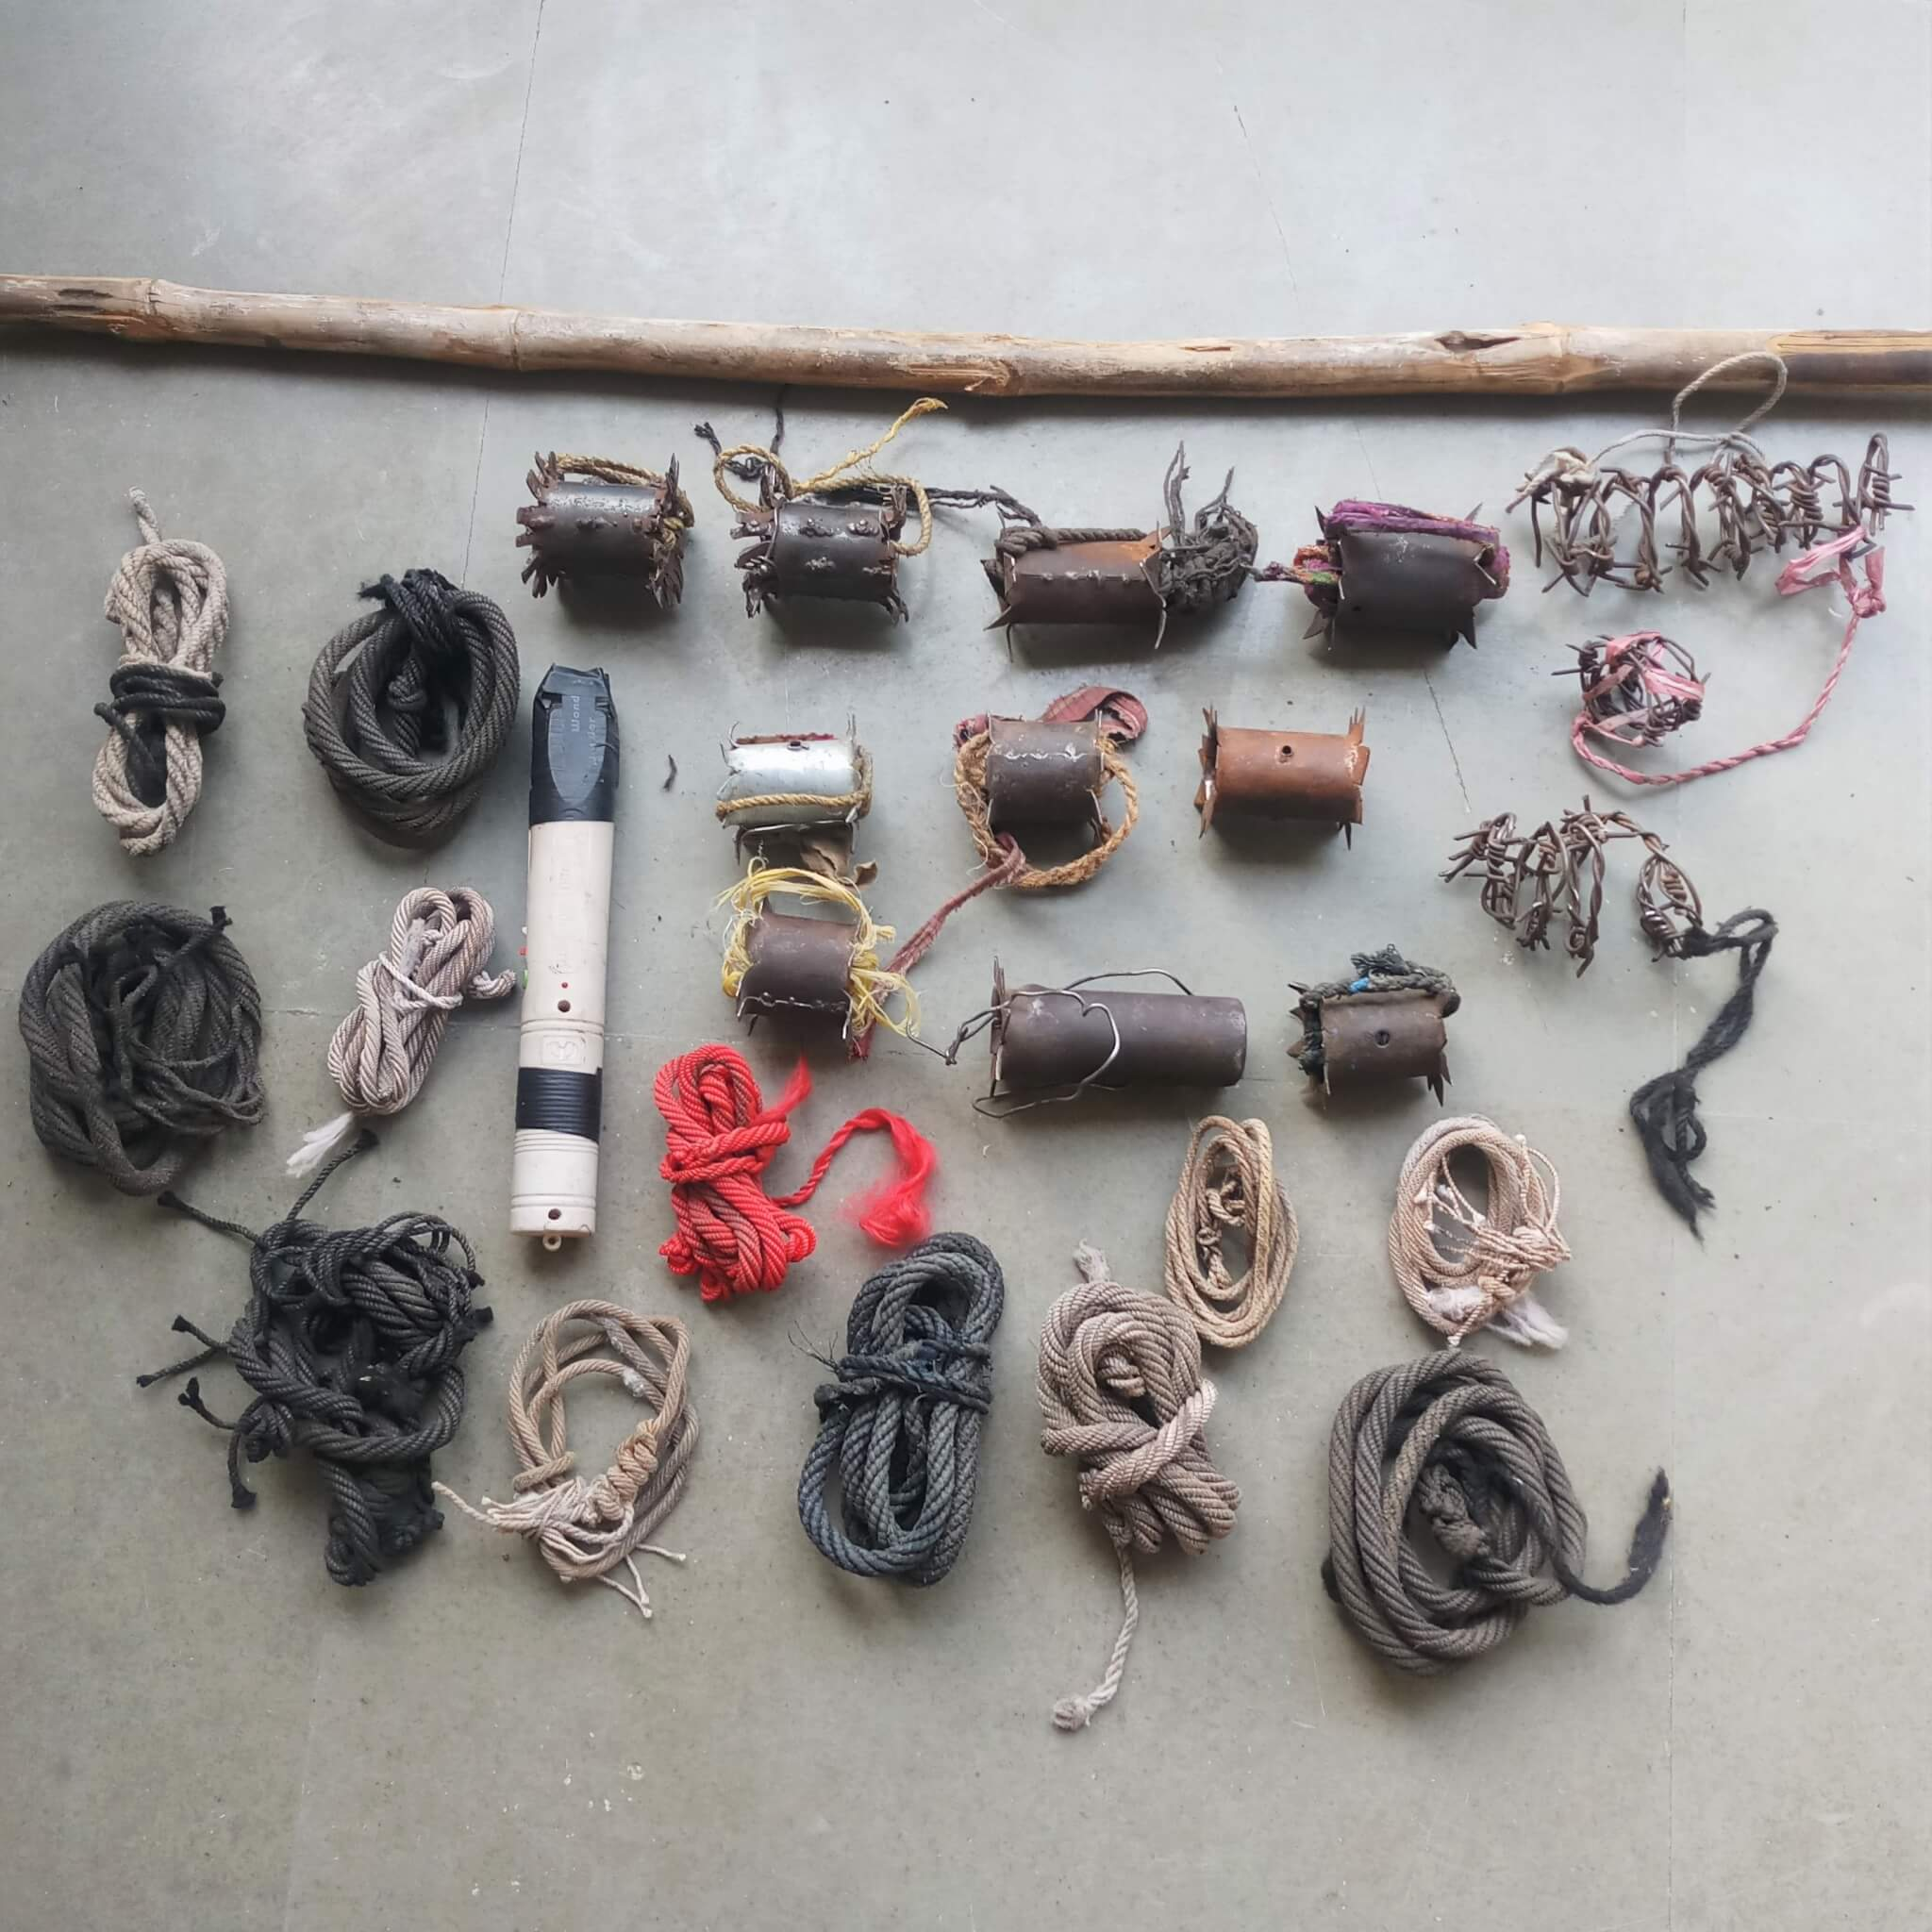 An array of cruel devices is laid out, including a stick, nose ropes, and barbed-wire and metal yoke spikes.